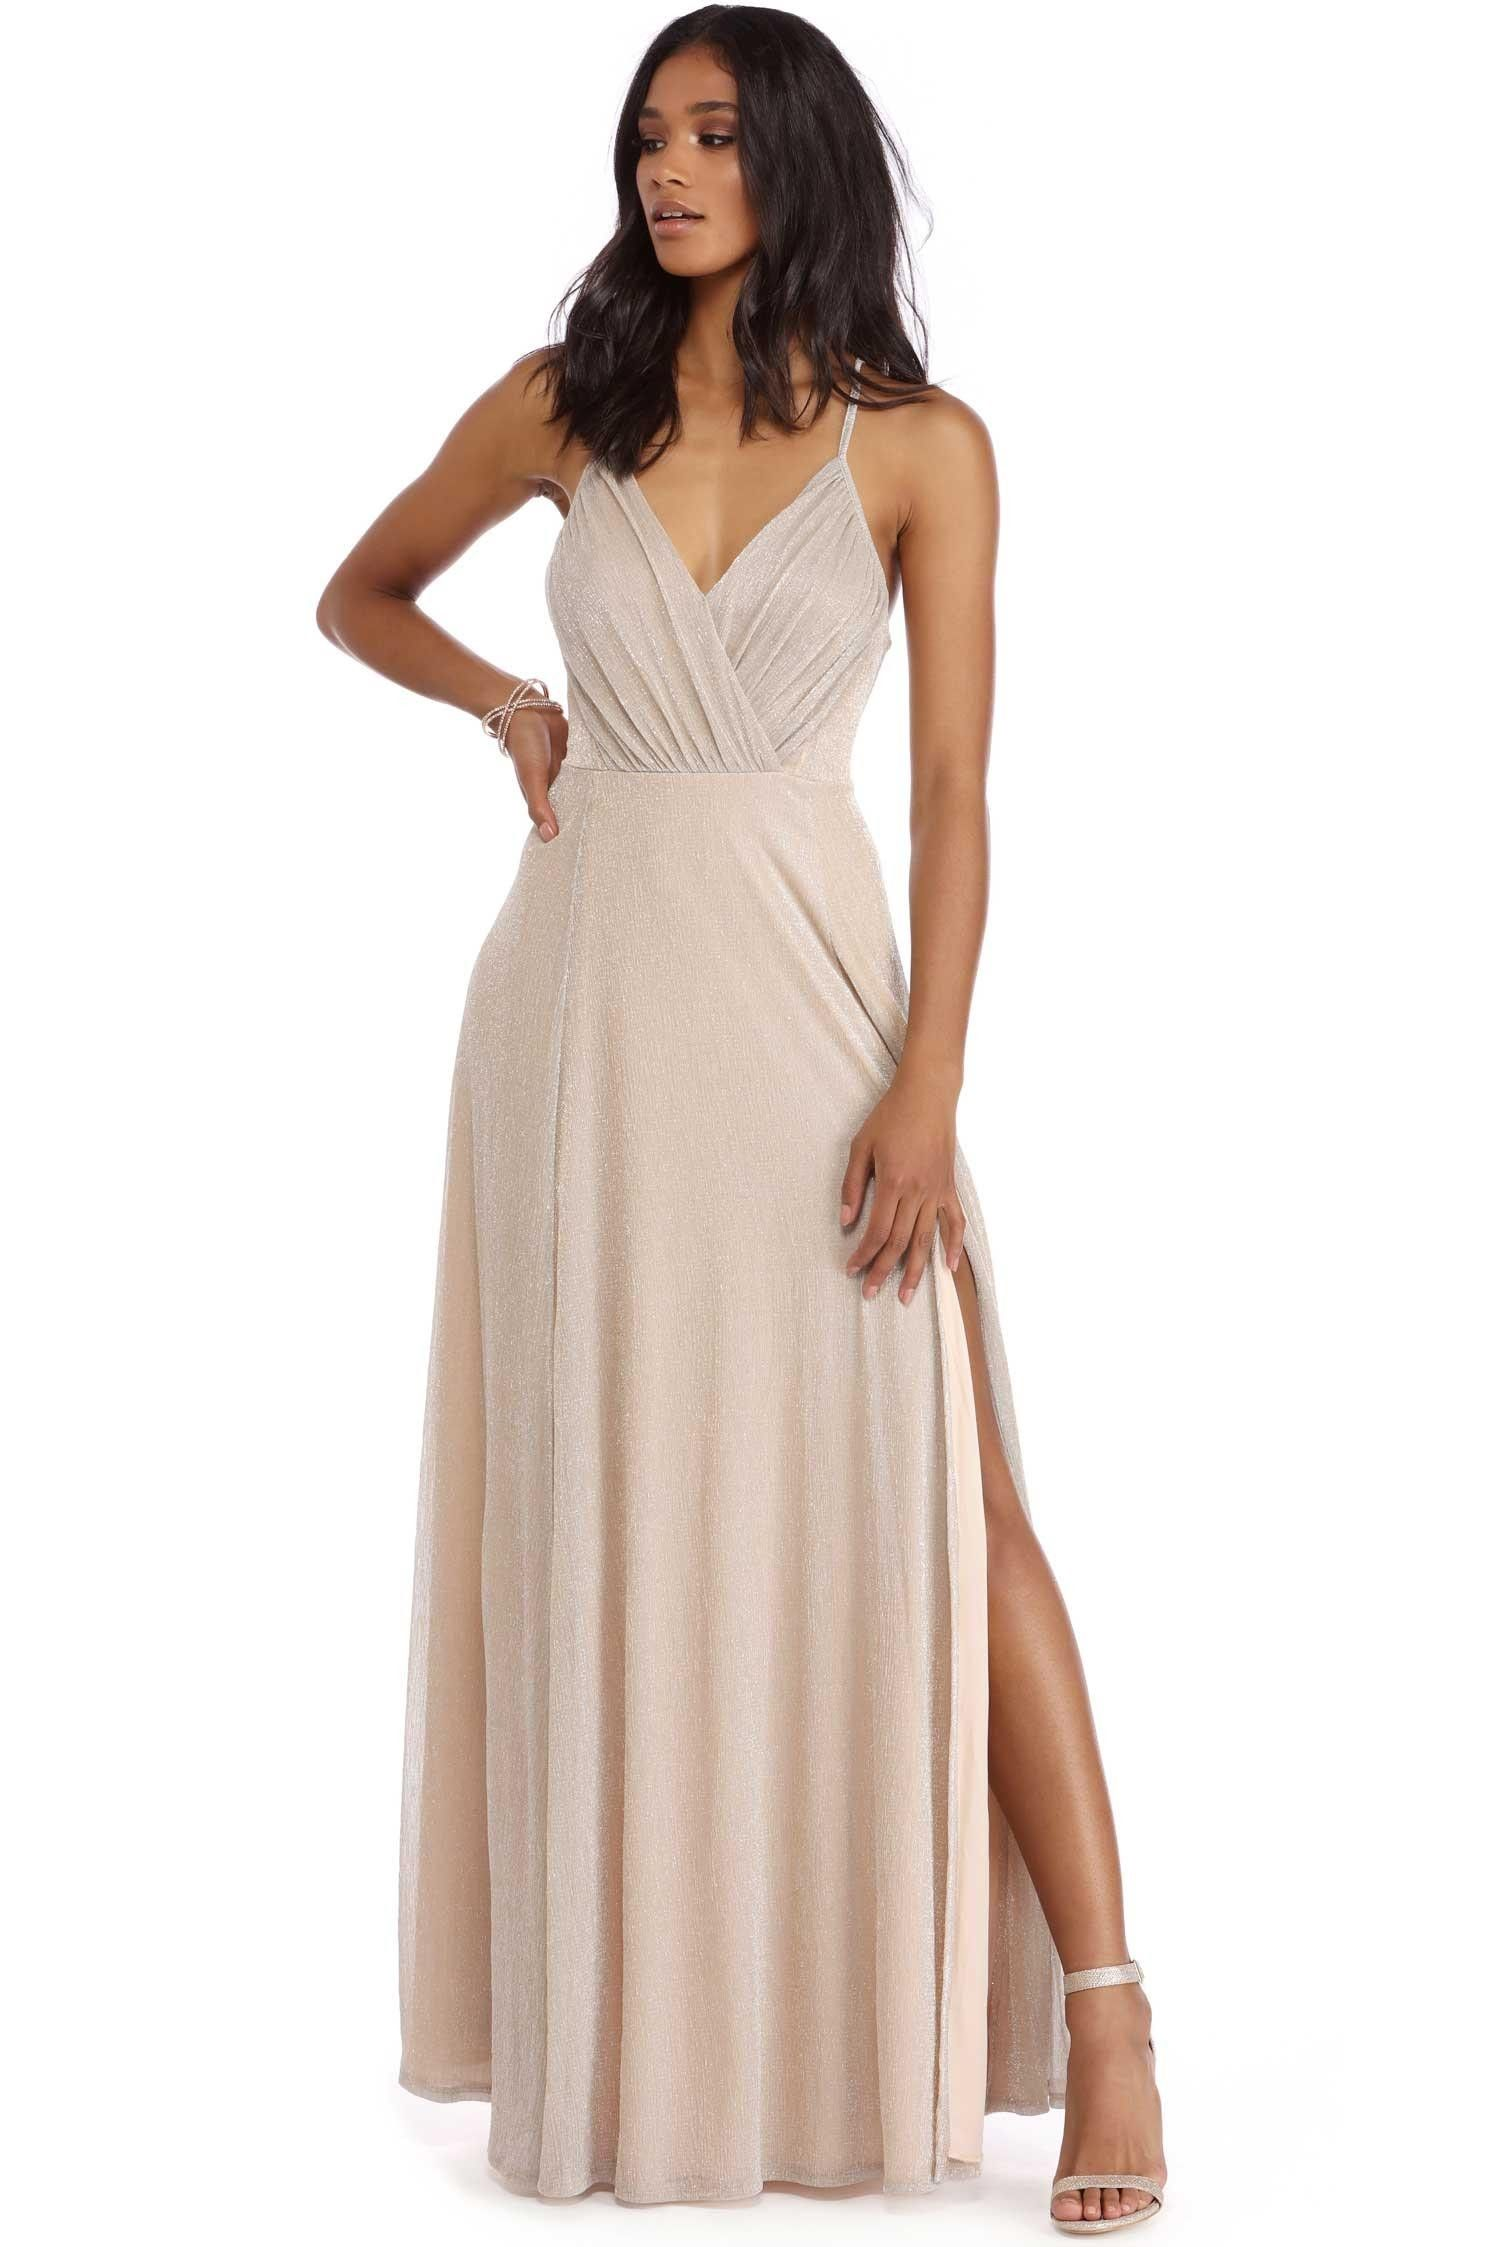 Veronica Gray Shimmer Evening Gown